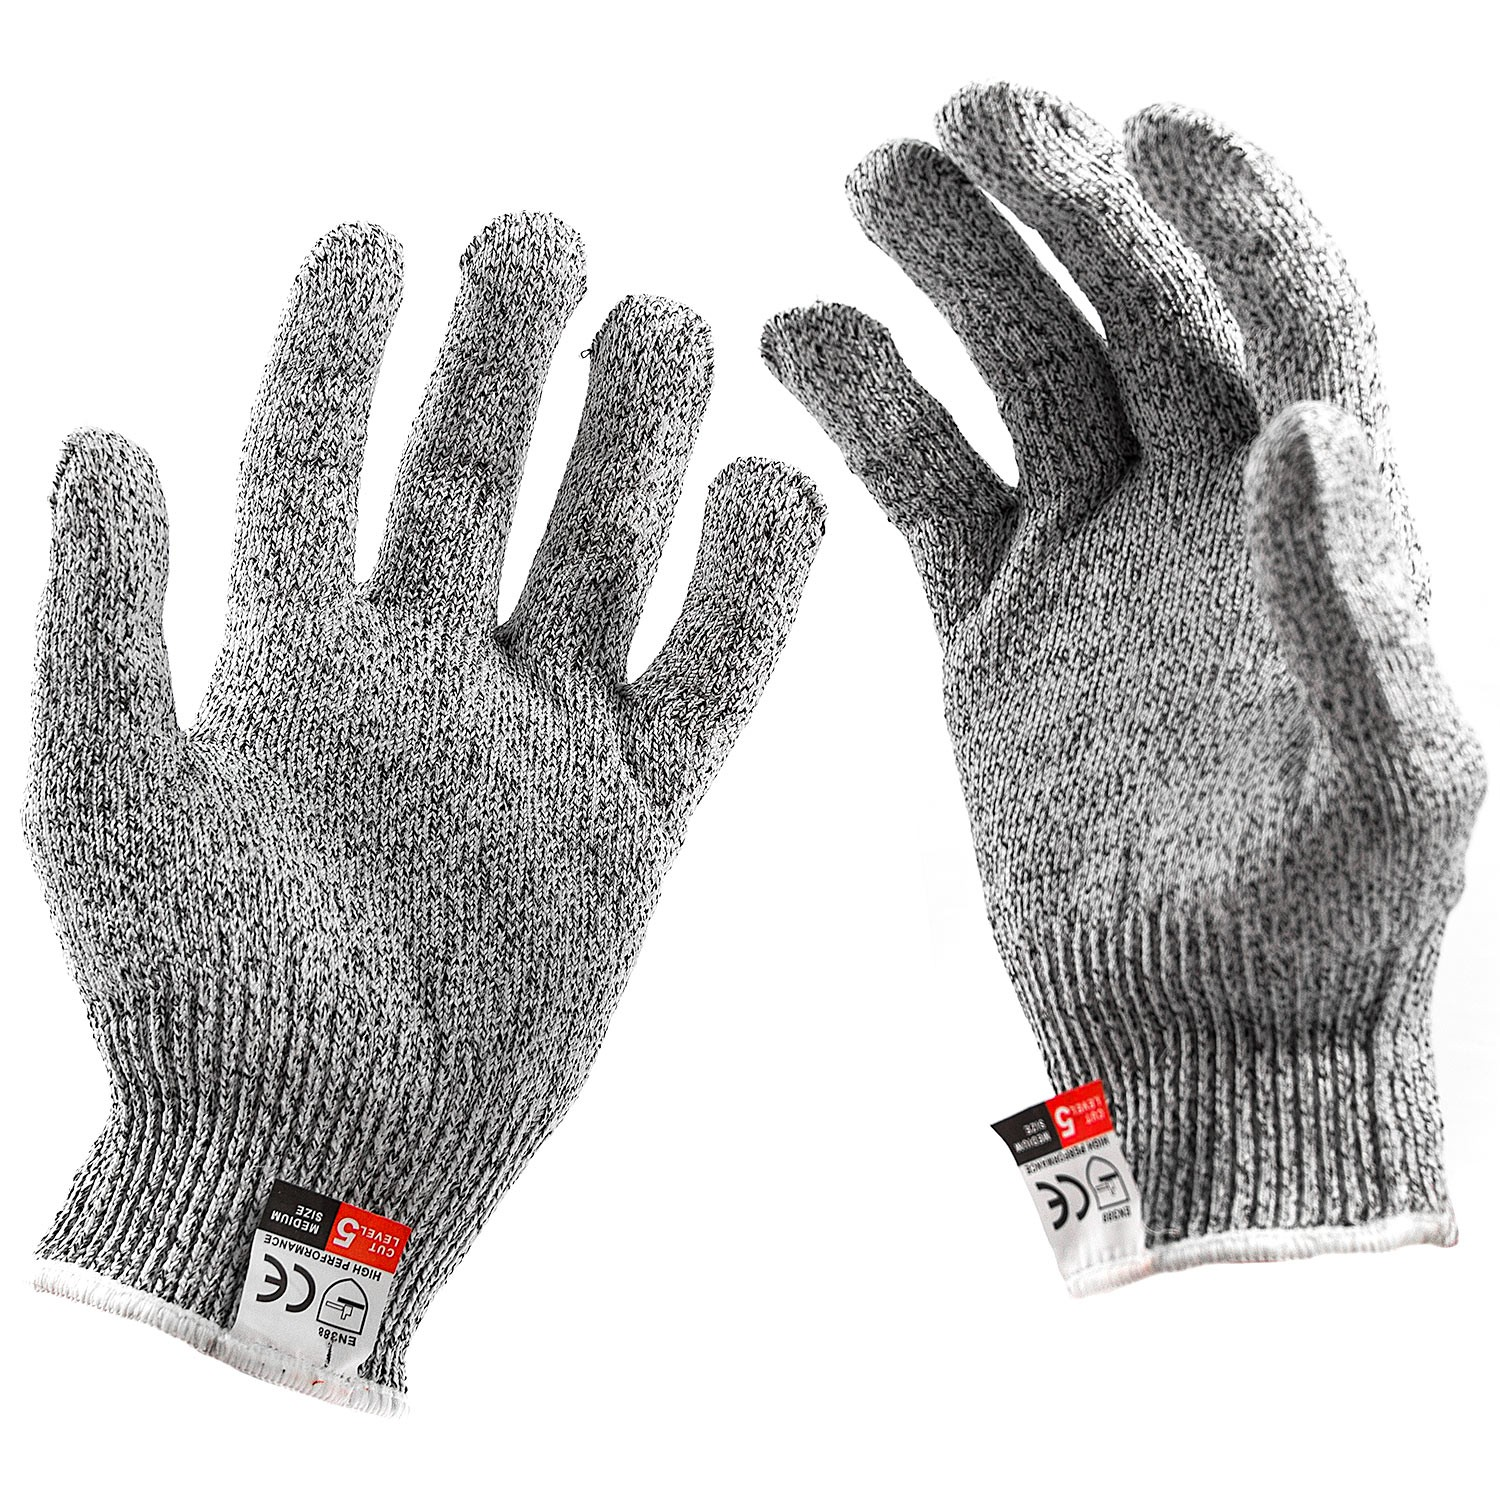 cut gloves for kitchen exhaust fans kitchens resistant food grade level 5 protection safety